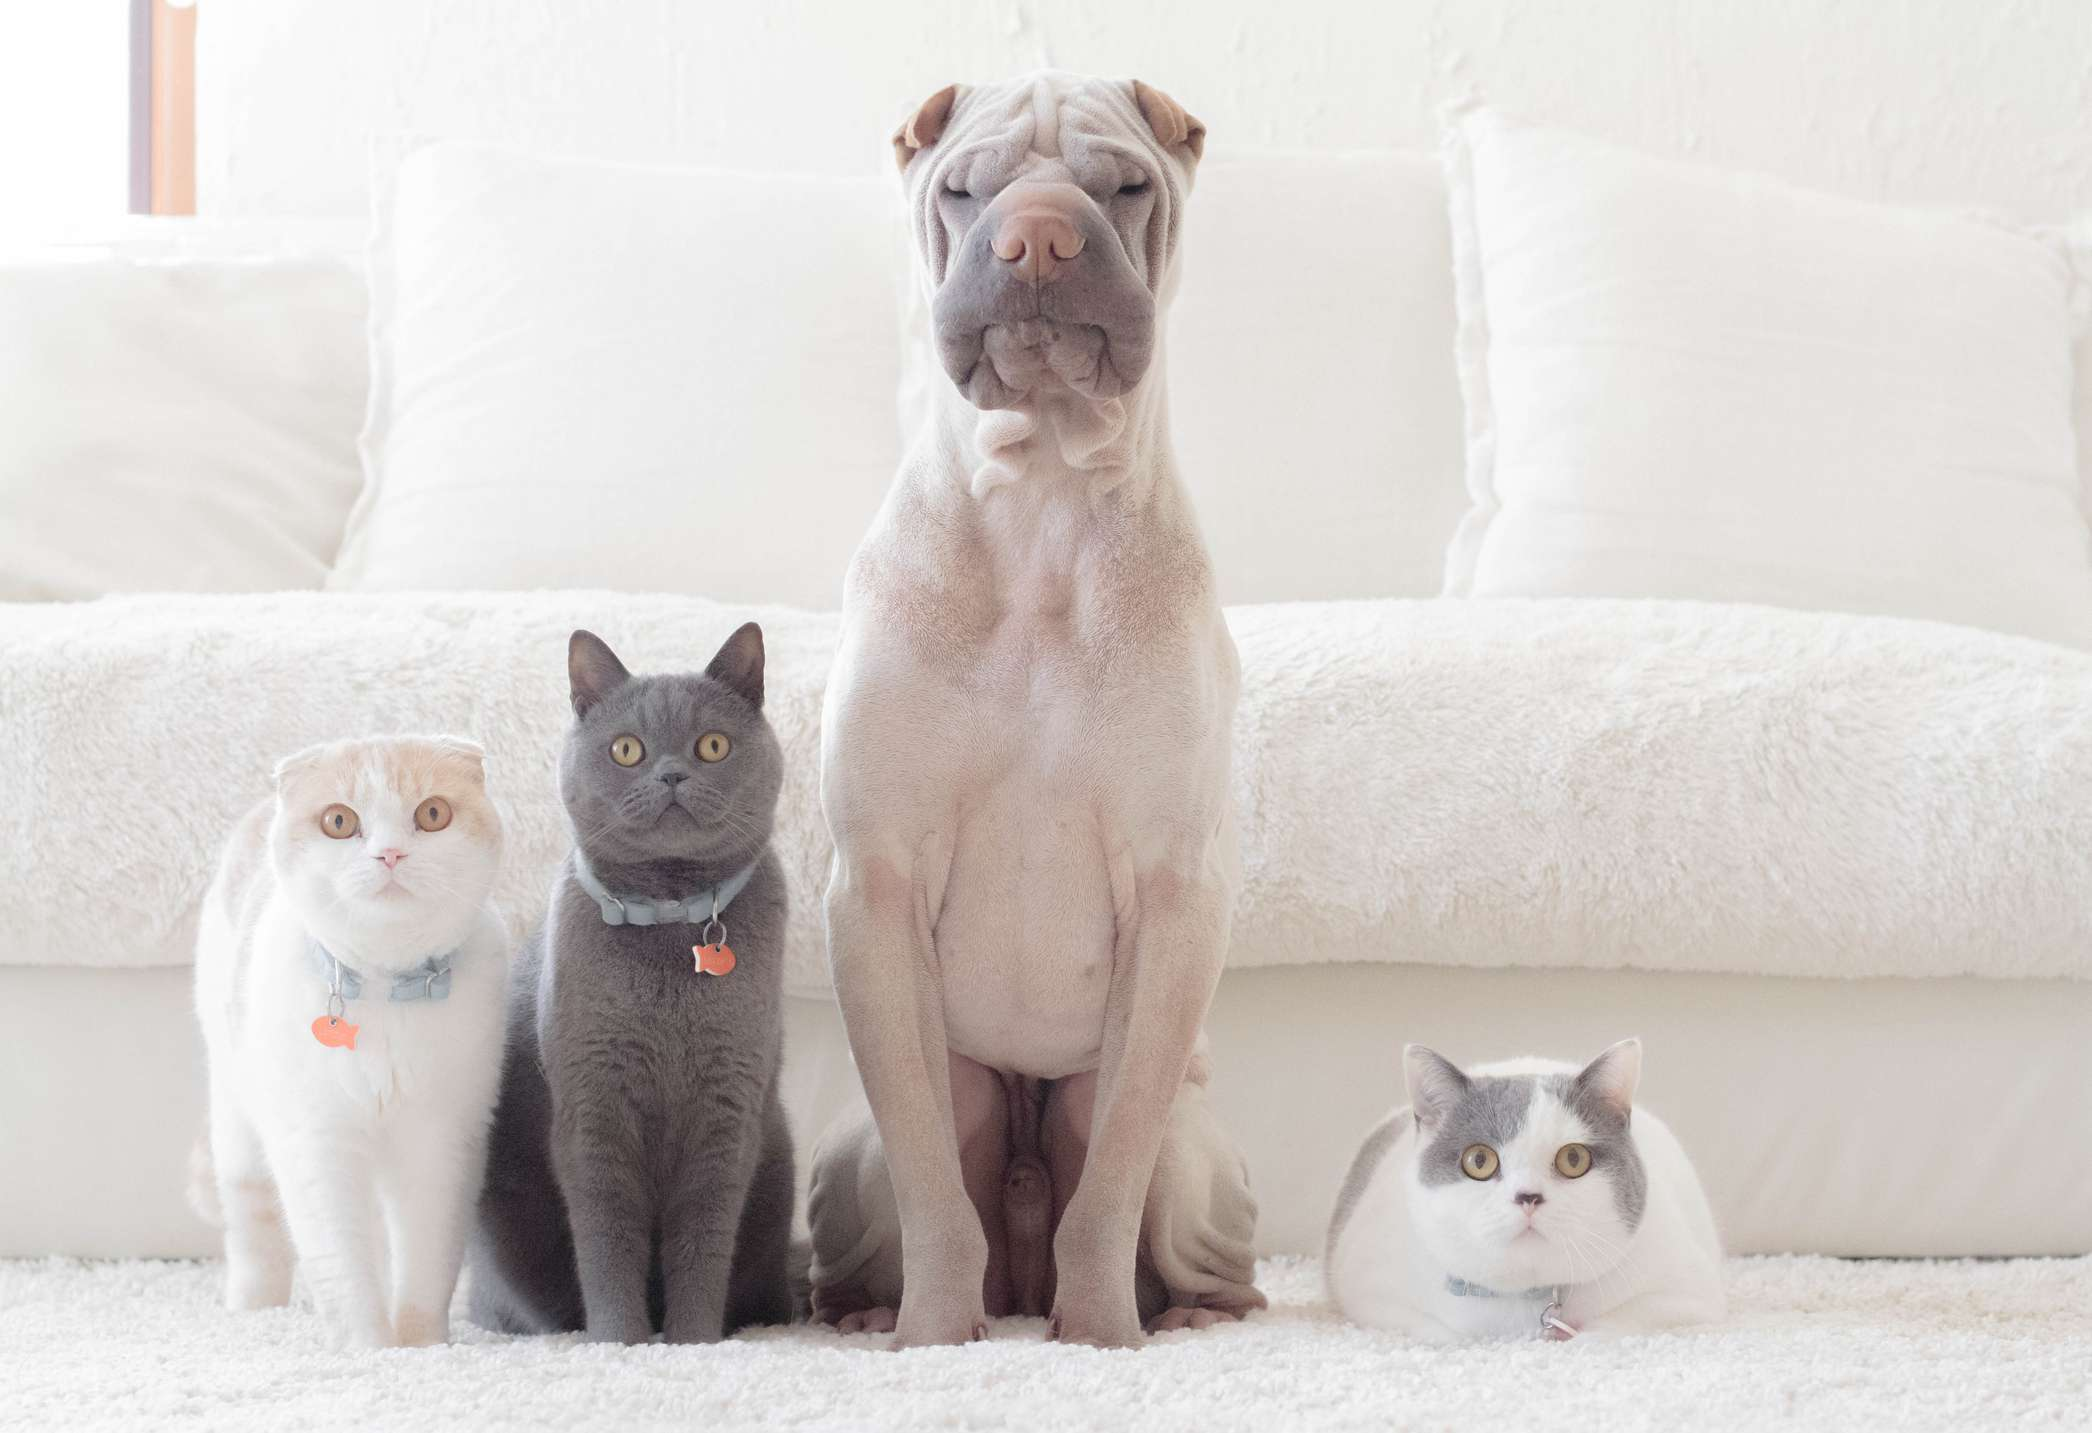 Pet cats and dog